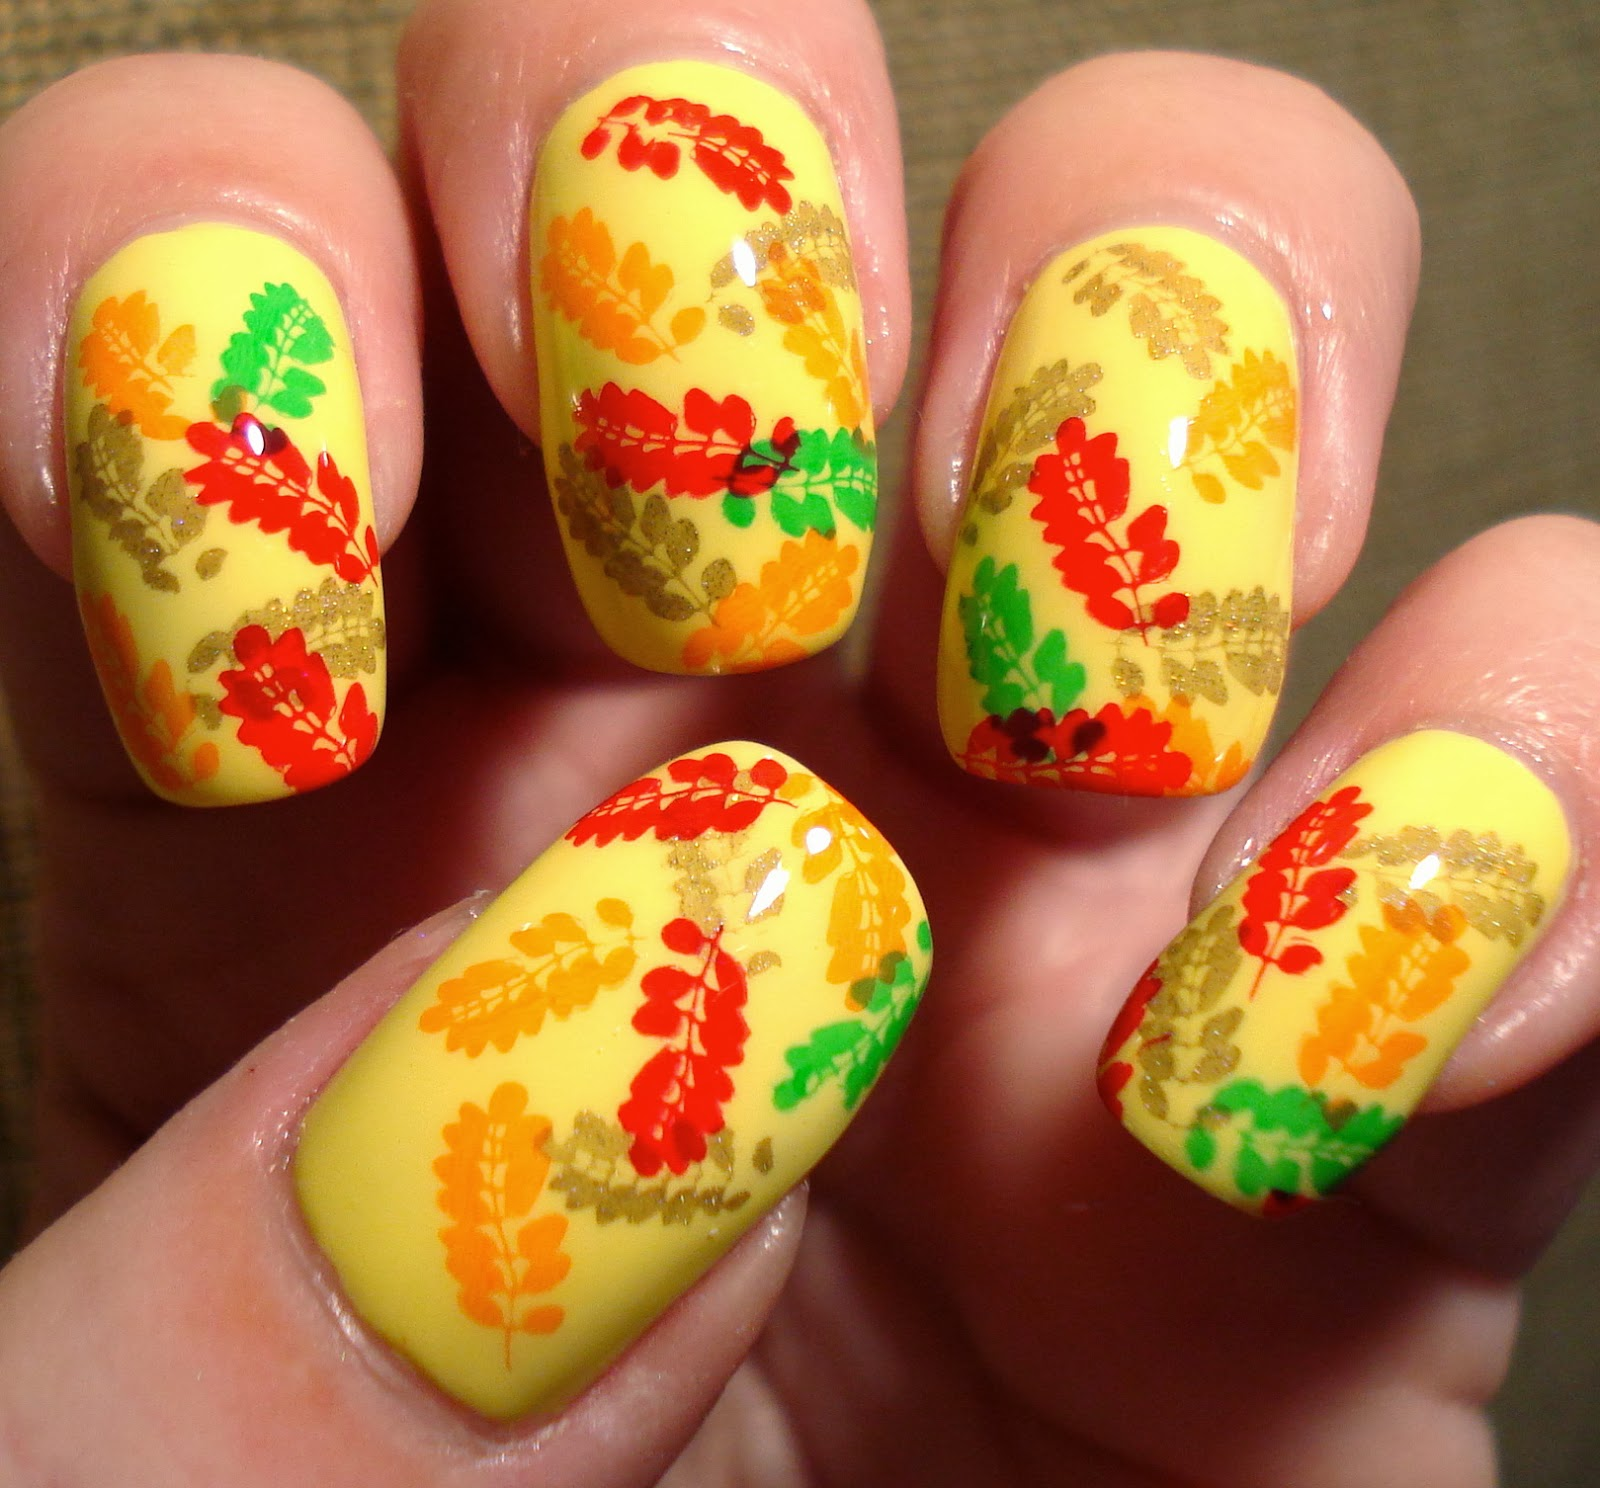 Thatleanne Firey Autumn Leaves Nail Art: Little Miss Nailpolish: Autumn Leaves Nail Art